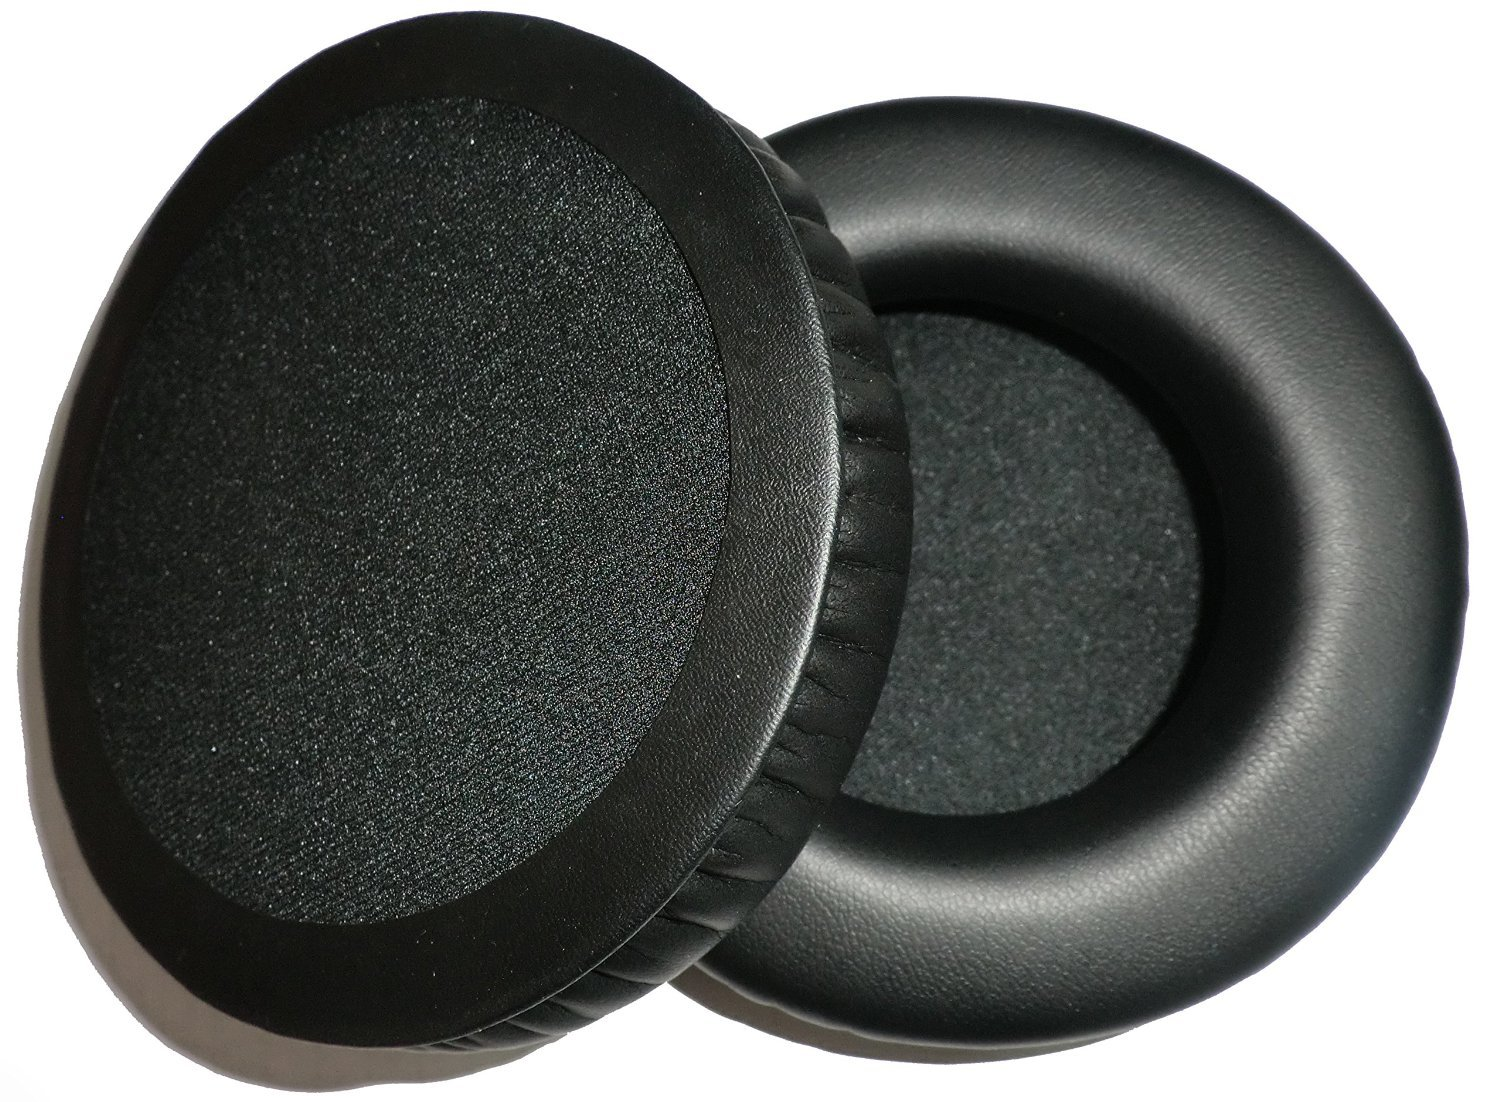 VEVER Replacement Ear Pads Cushions for Beyerdynamic Dt880 Dt860 Dt990 Dt770 and AKG K270 K242 K271MK2 K240S K240MK2 K272HD Professional Headphone (with VEVER Logo Package) 4330152775